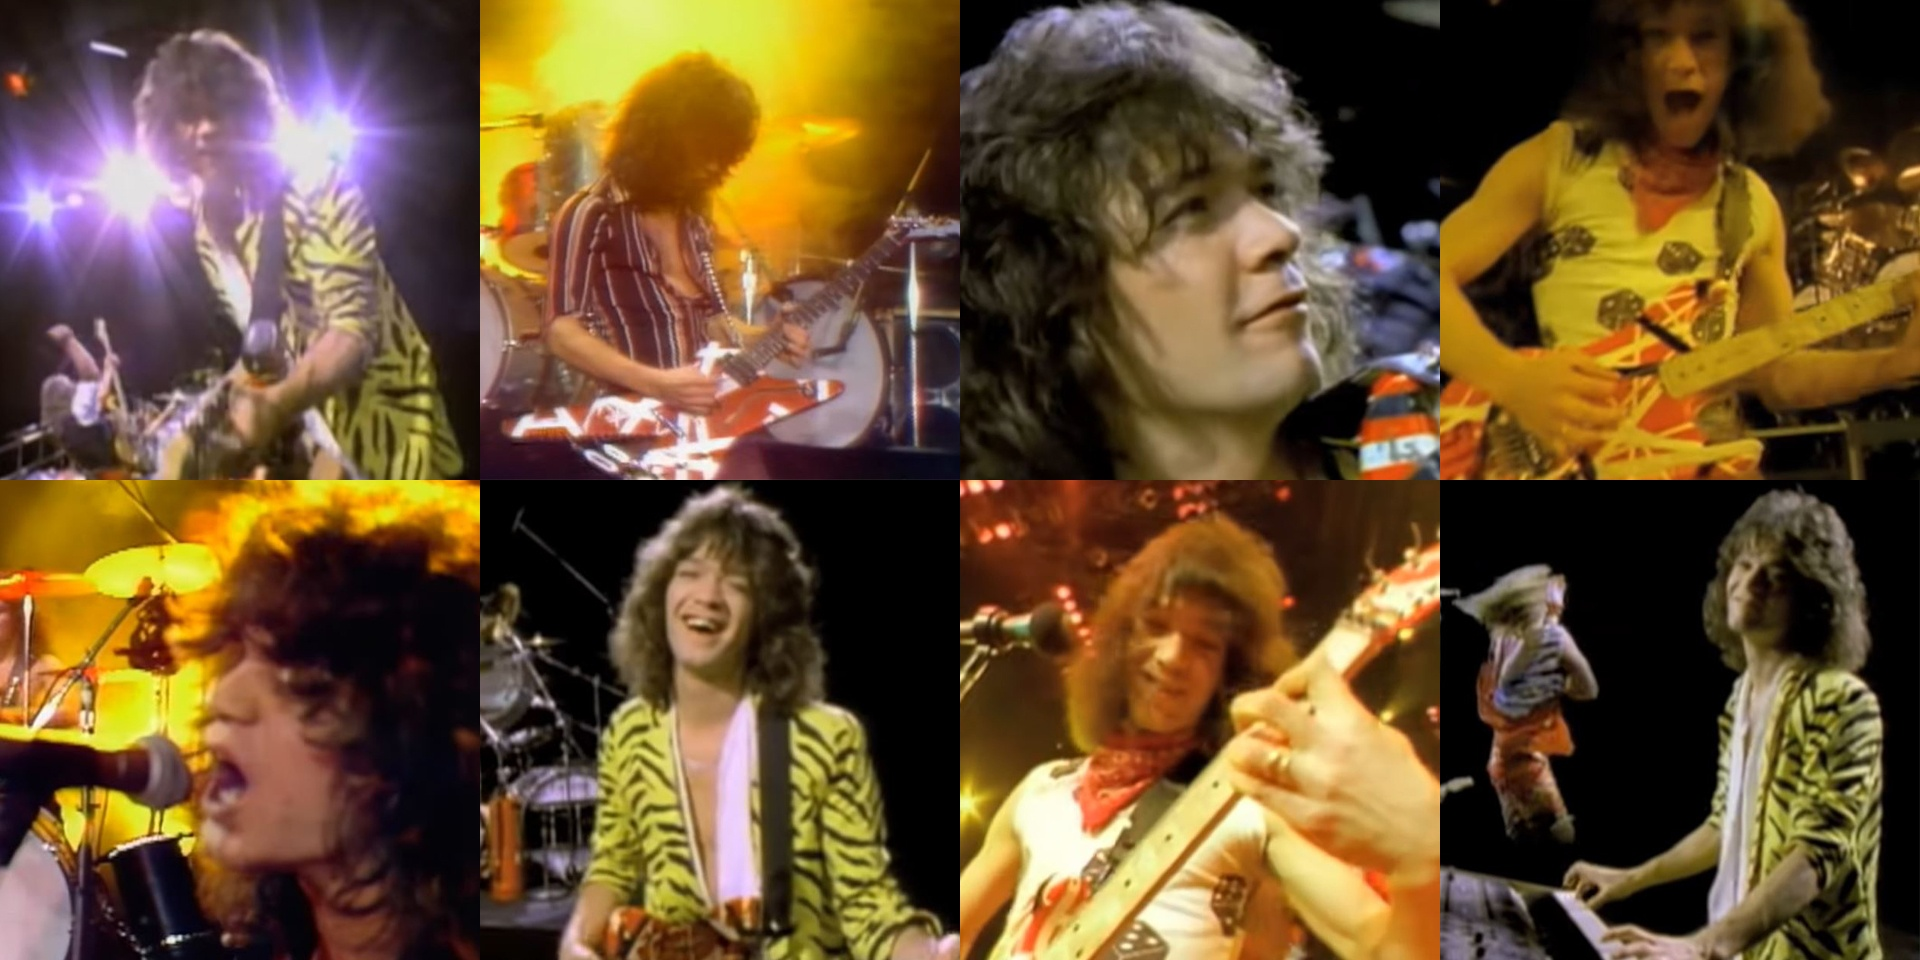 Musicians and fans pay tribute to the influence and legacy of Eddie Van Halen